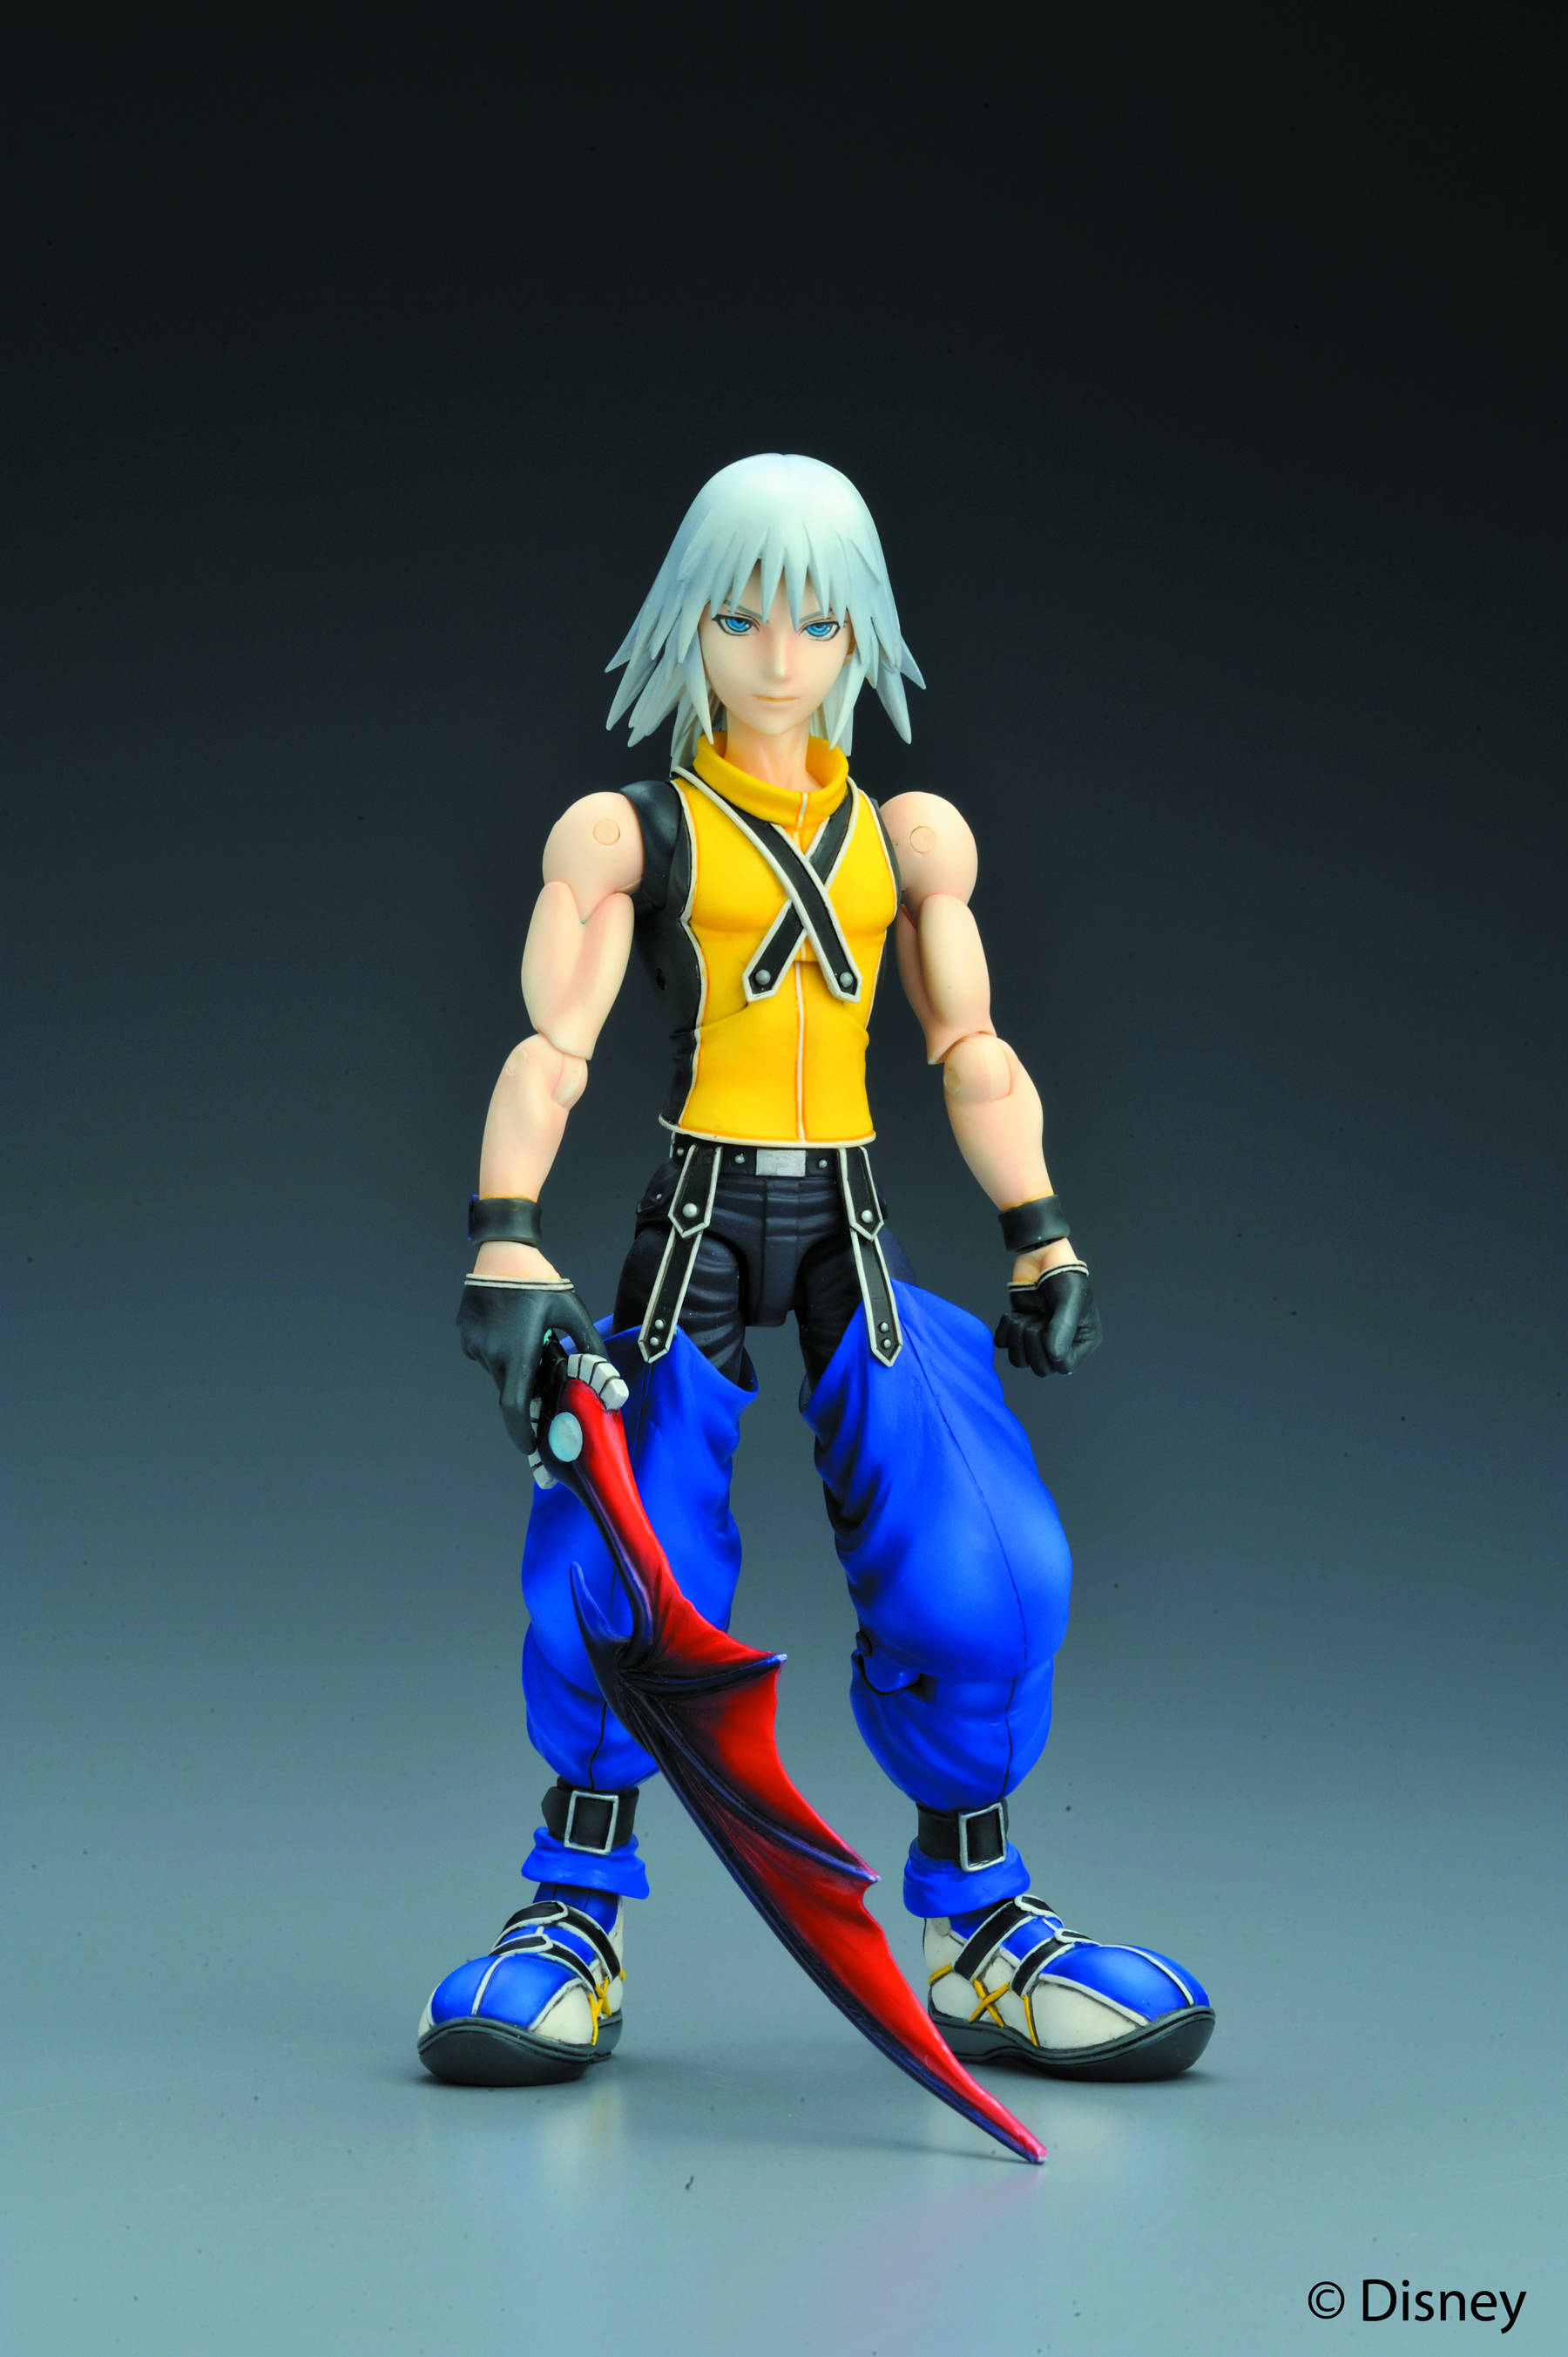 KINGDOM HEARTS PLAY ARTS AF 4PC ASST